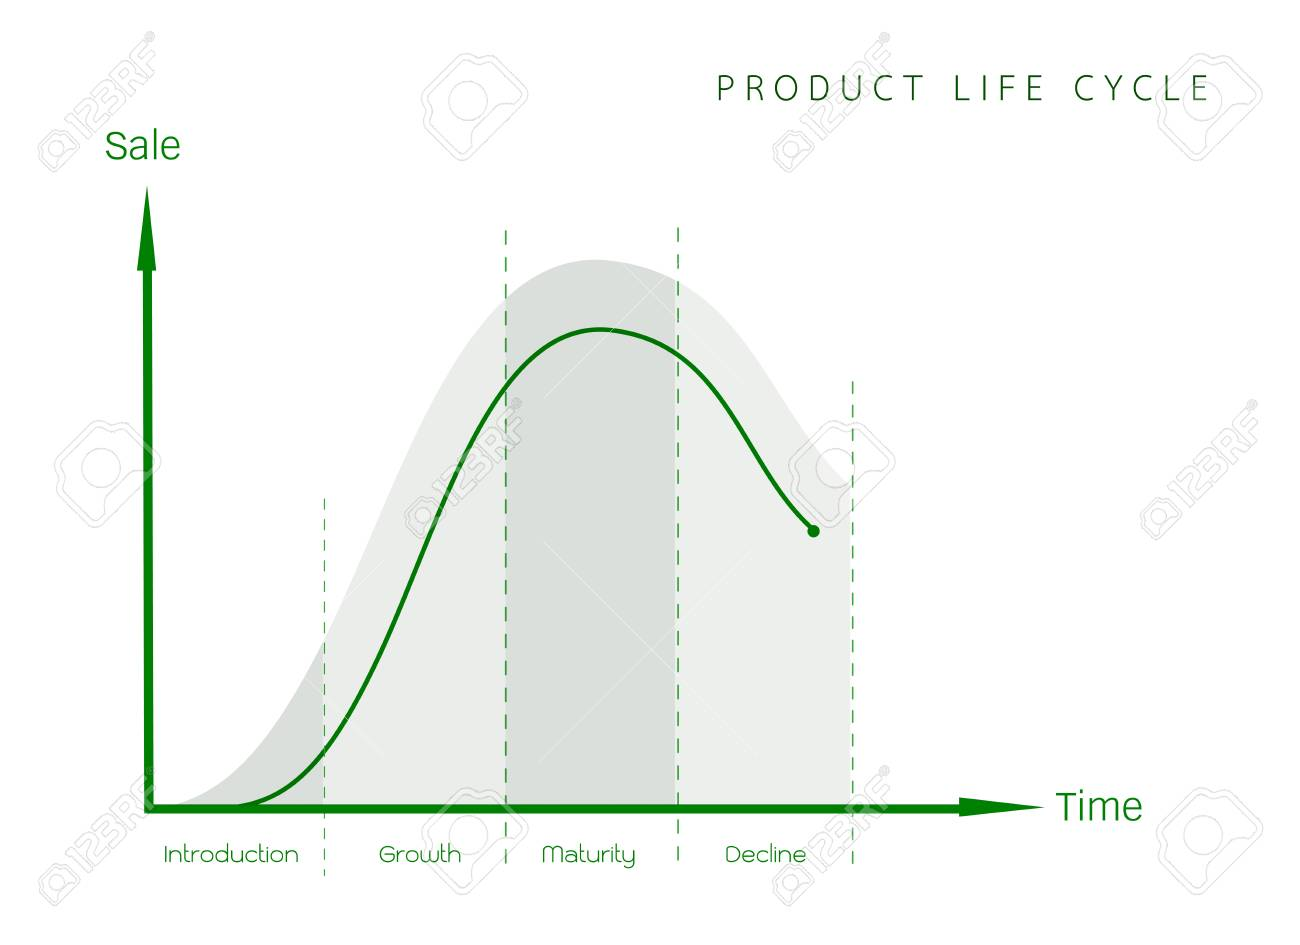 Business and marketing concepts 4 stage of product life cycle business and marketing concepts 4 stage of product life cycle graph stock vector ccuart Choice Image